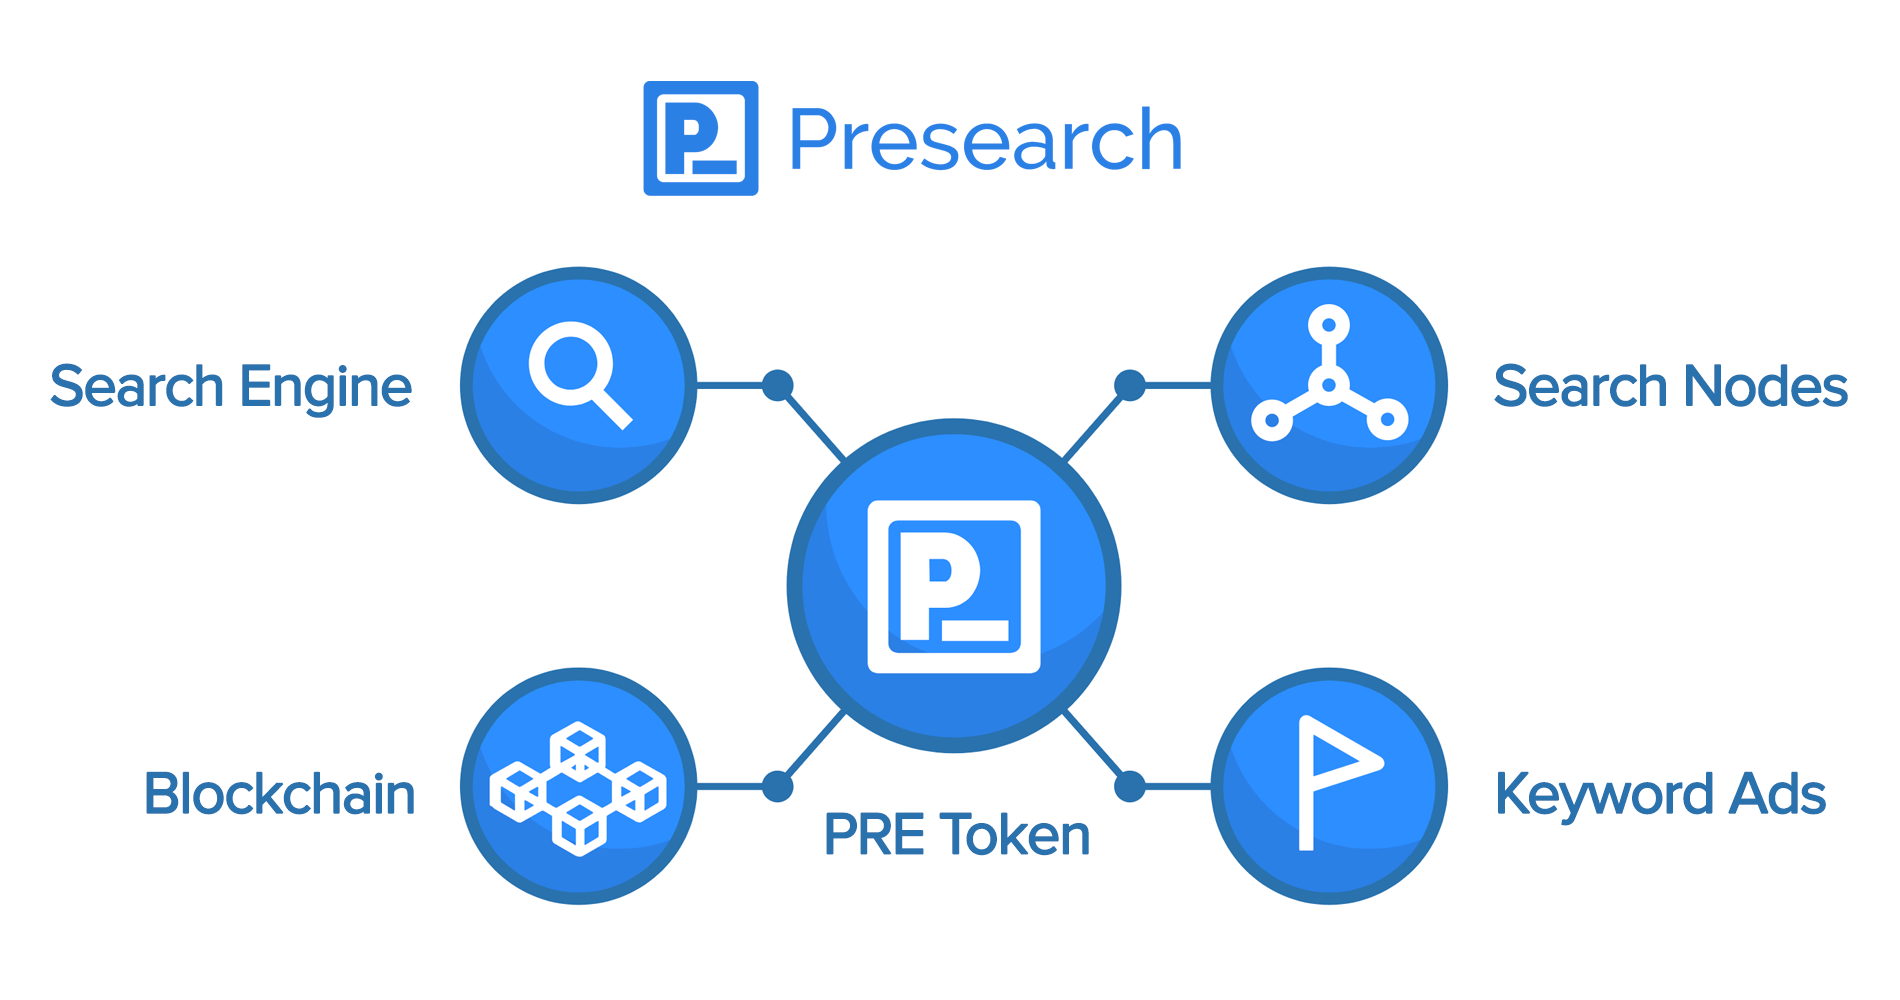 Presearch - A Better Search Engine For We The People